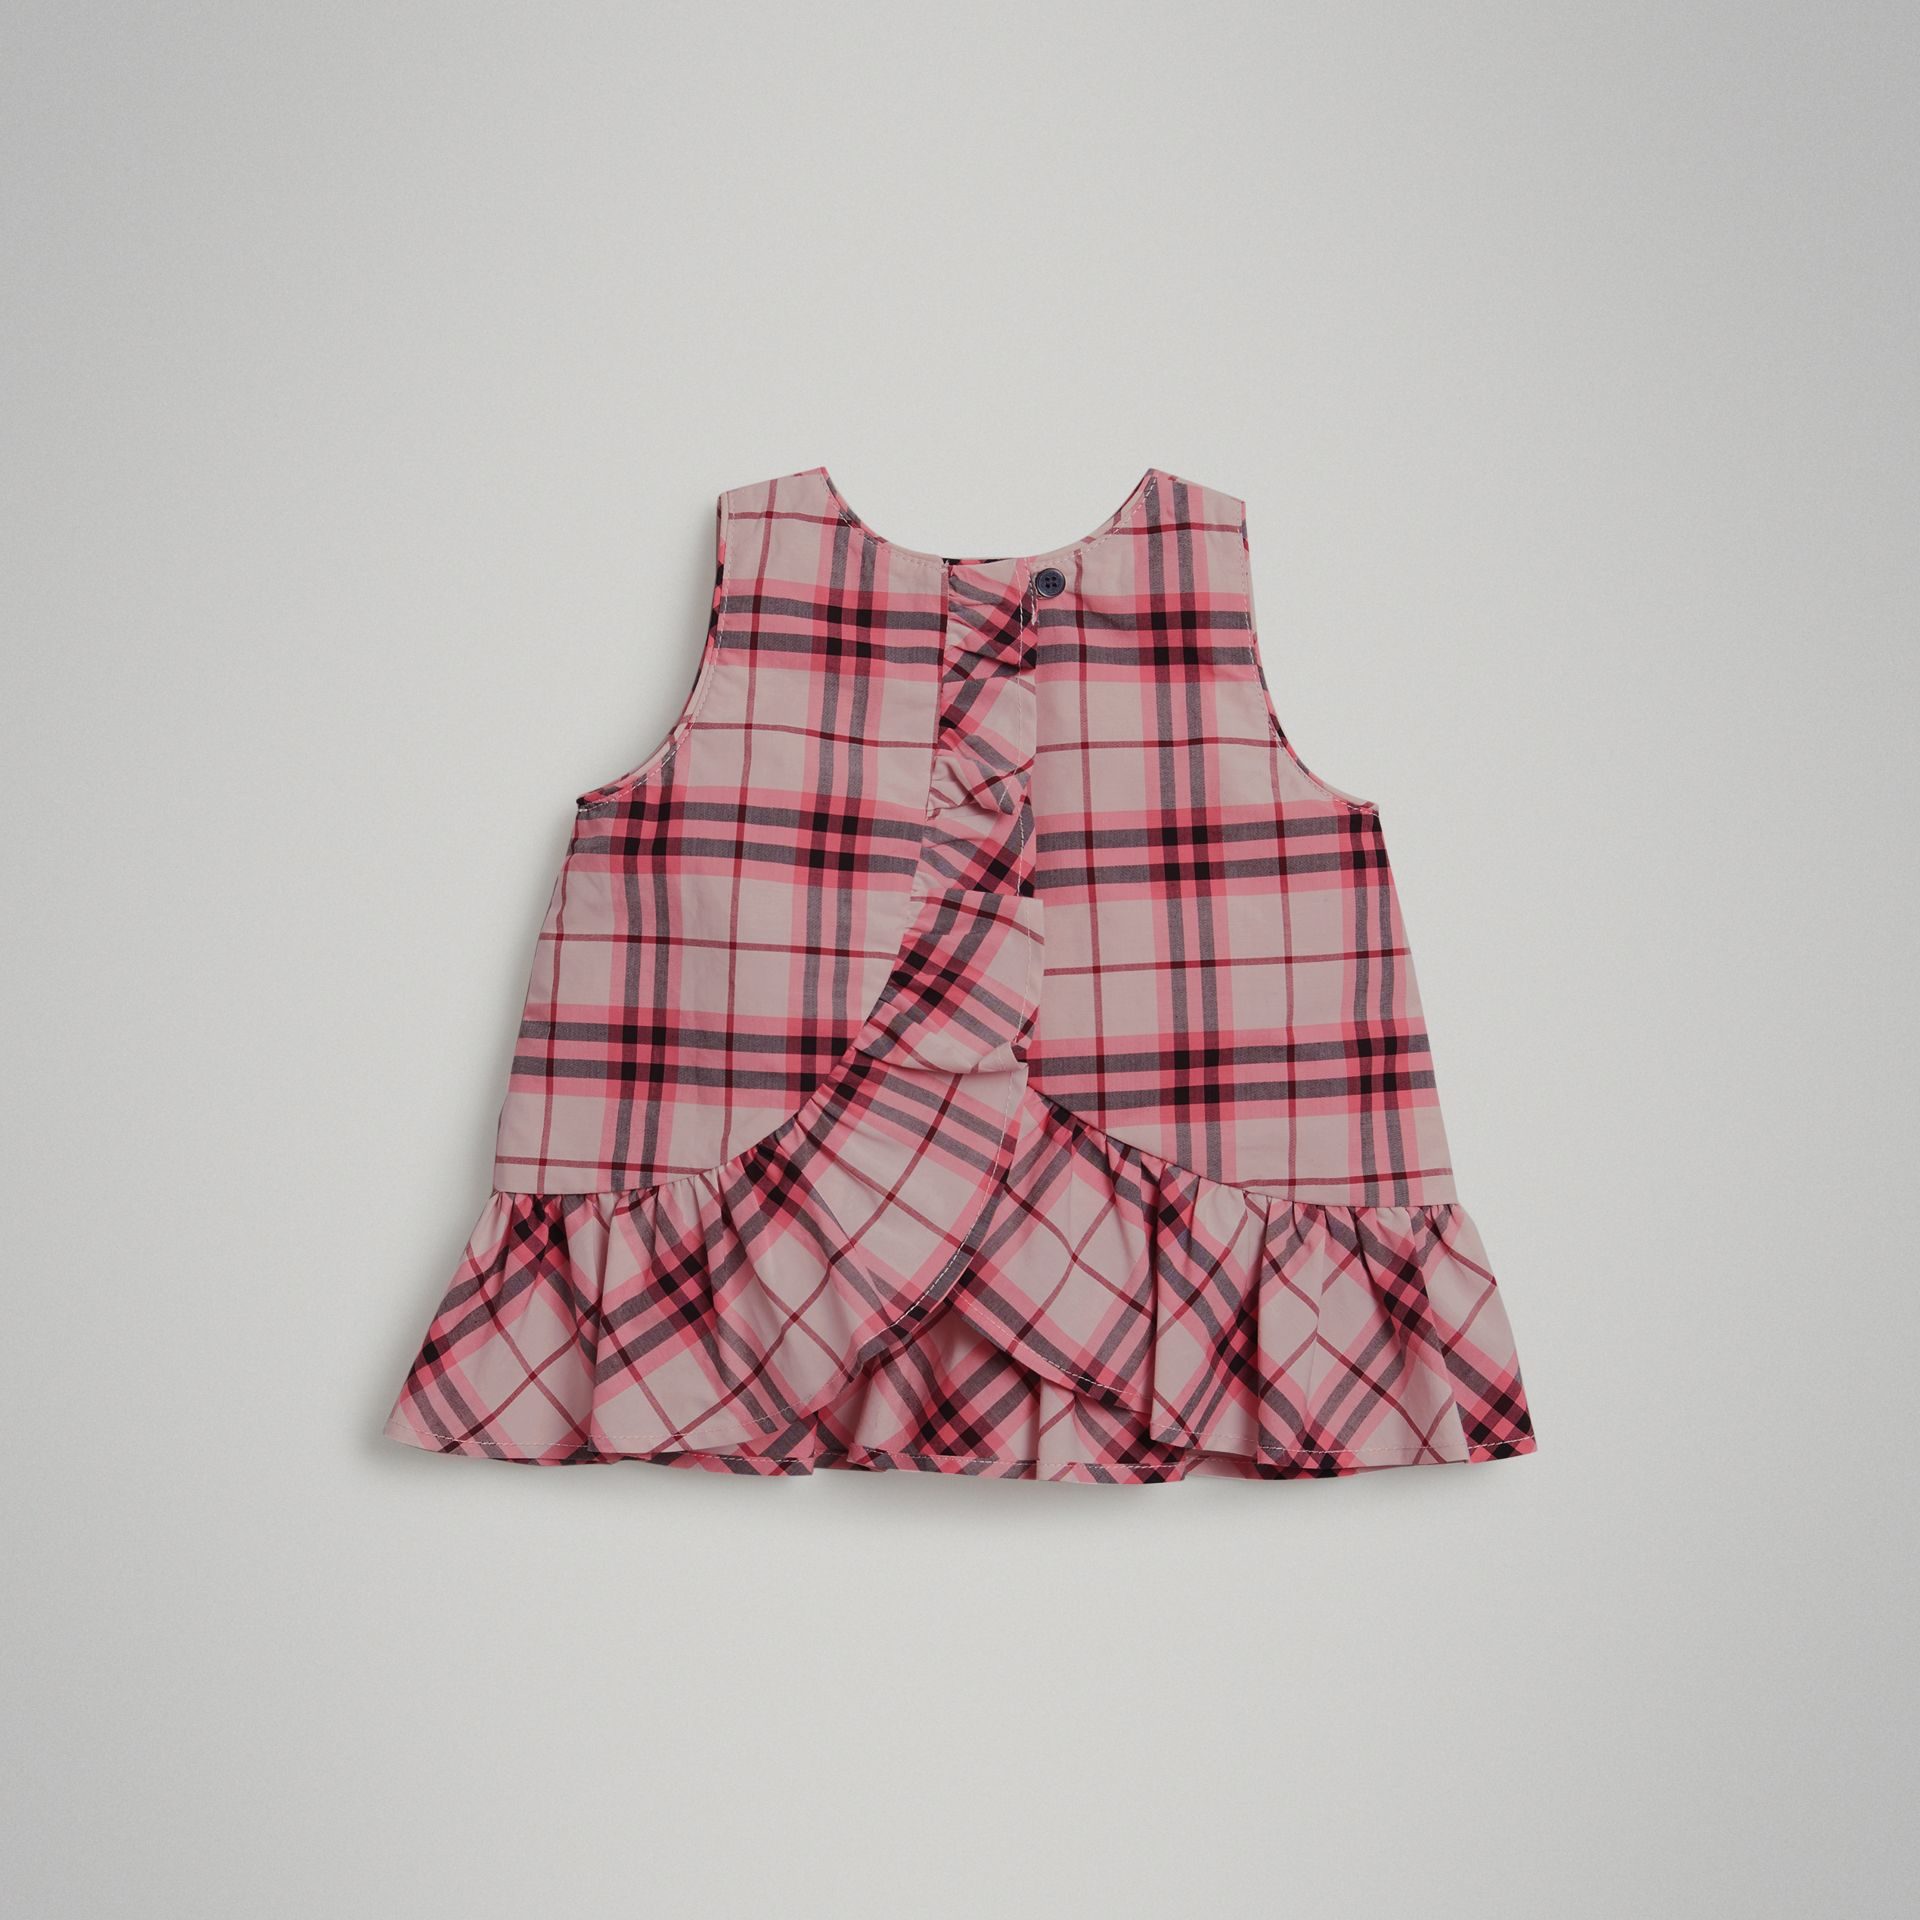 Haut en coton à motif check avec volants (Rose Vif) - Enfant | Burberry Canada - photo de la galerie 2